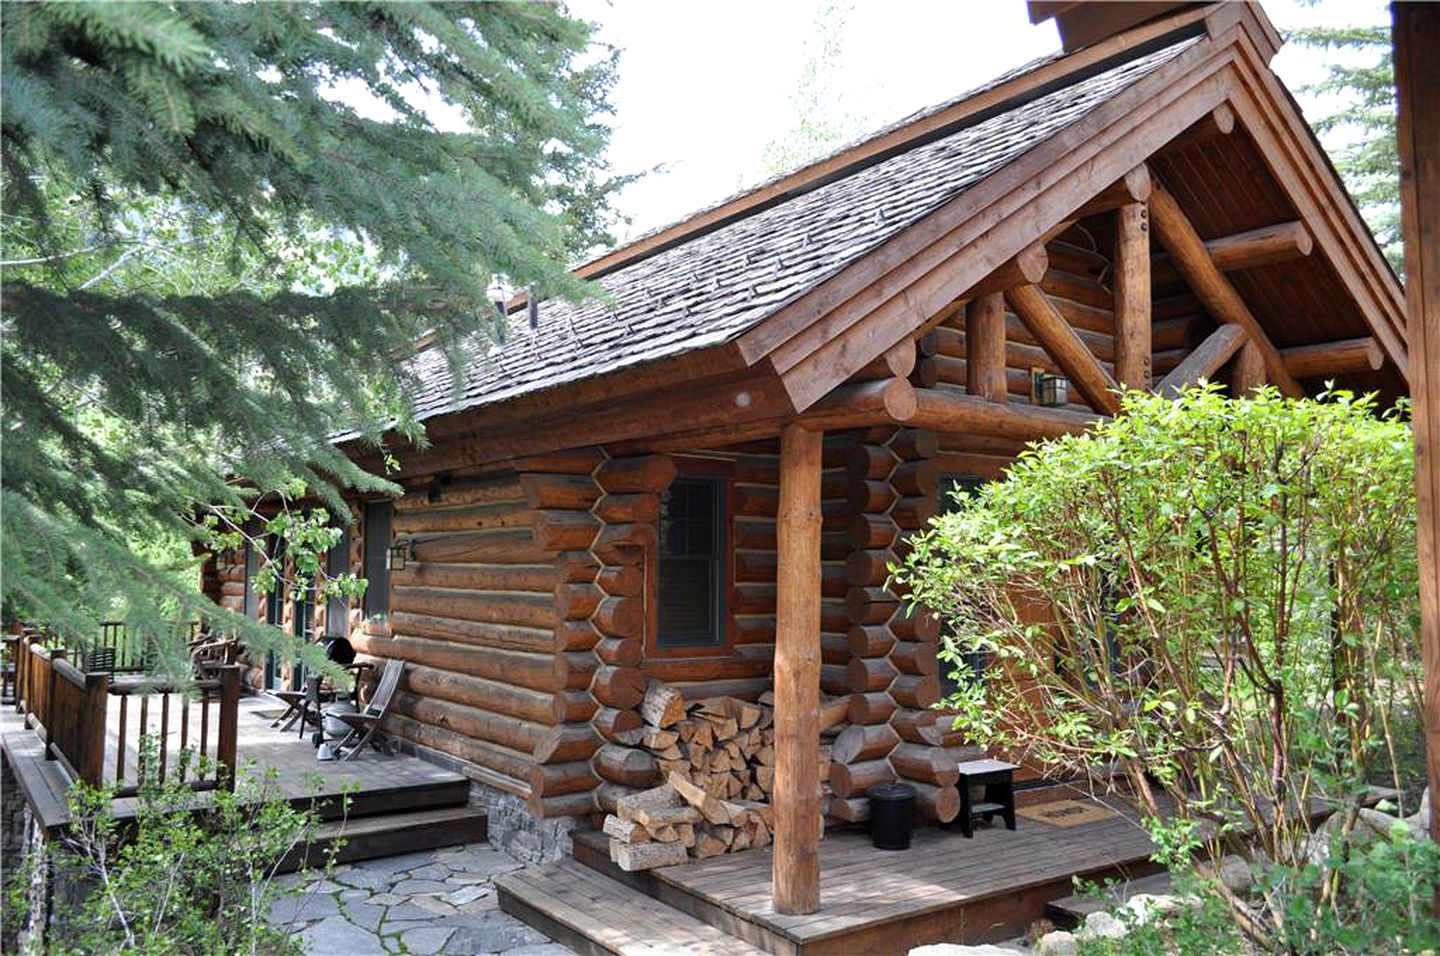 Log Cabins (Teton Village, Wyoming, United States)